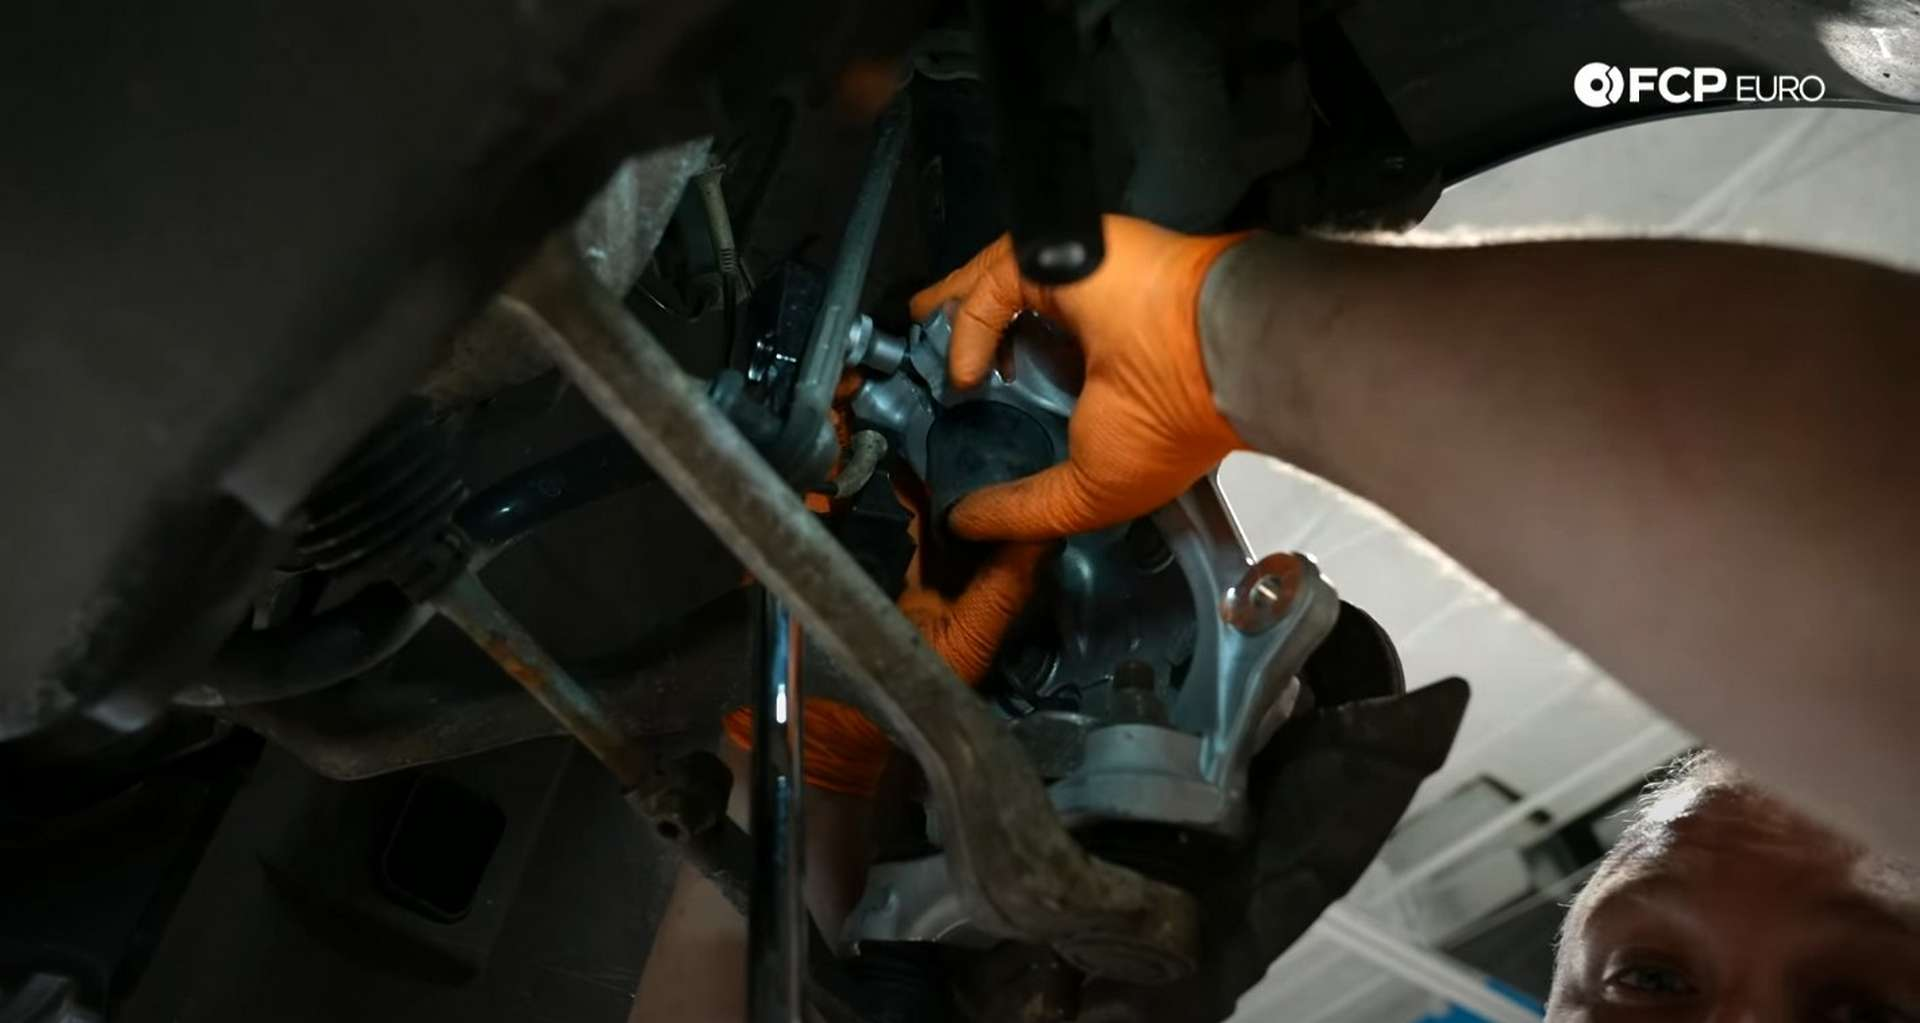 DIY BMW E9X Wheel Bearing Replacement pulling down on the knuckle